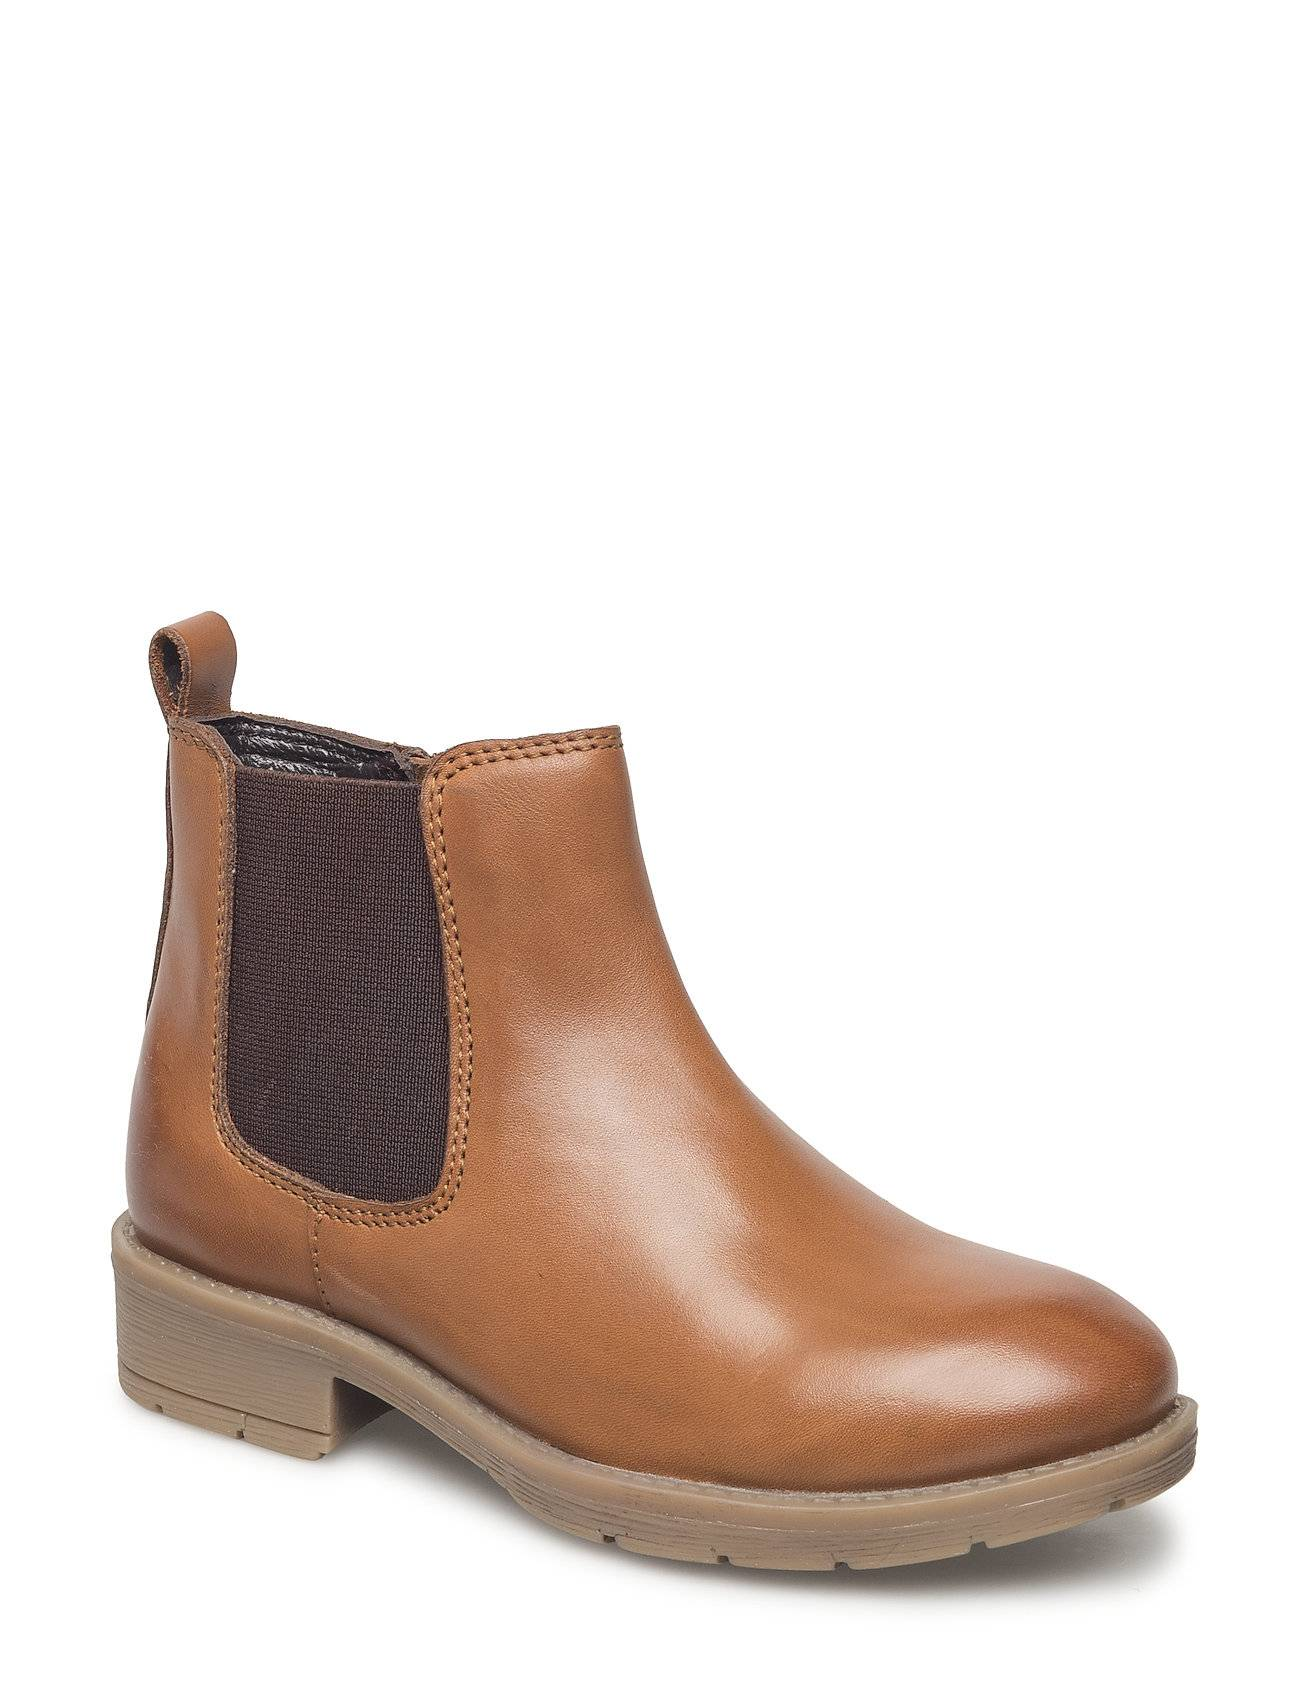 Gulliver Boots